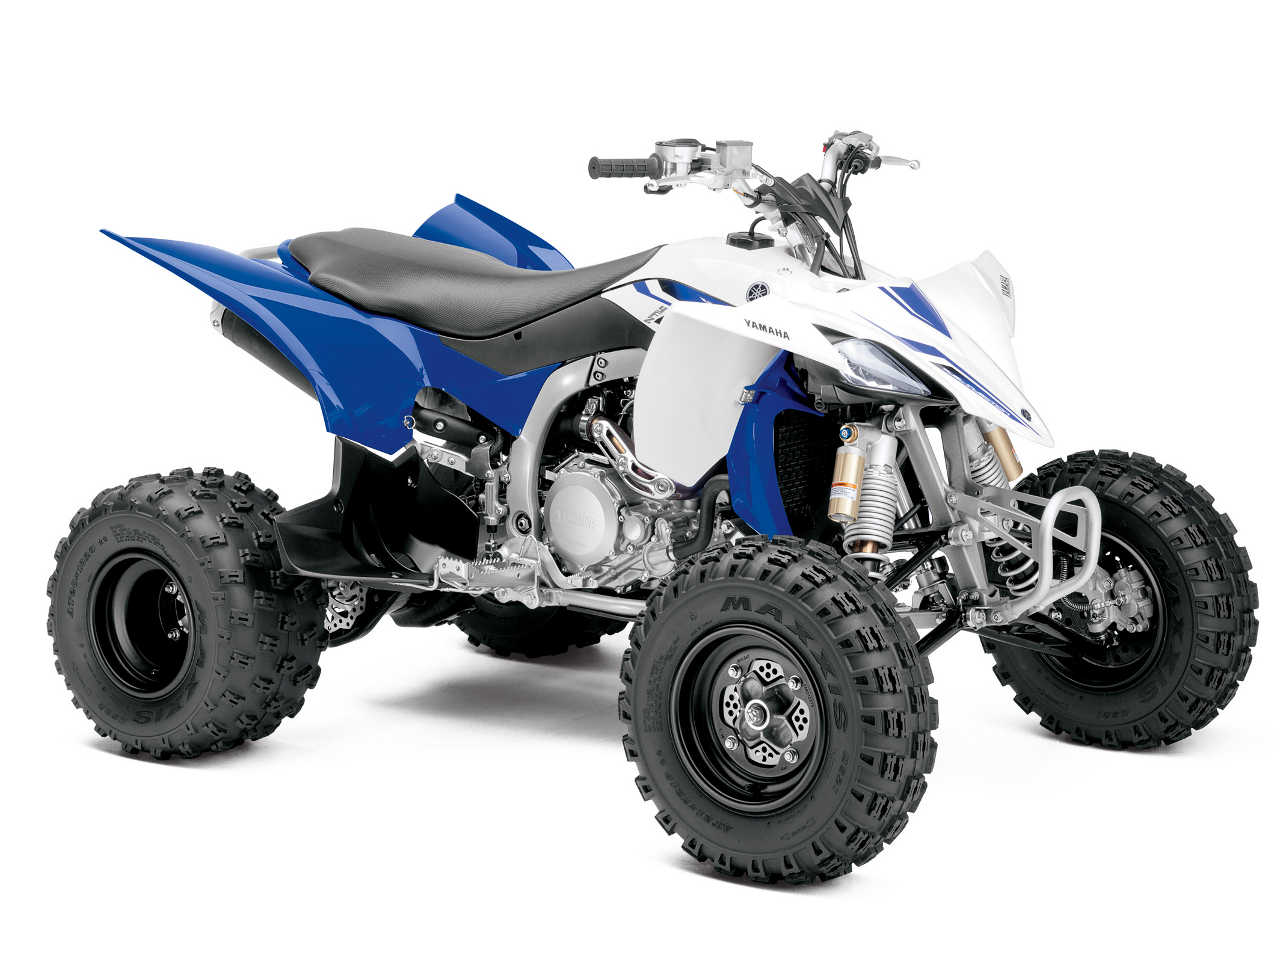 yamaha s 2014 yfz450r now assembled in usa atv illustrated. Black Bedroom Furniture Sets. Home Design Ideas